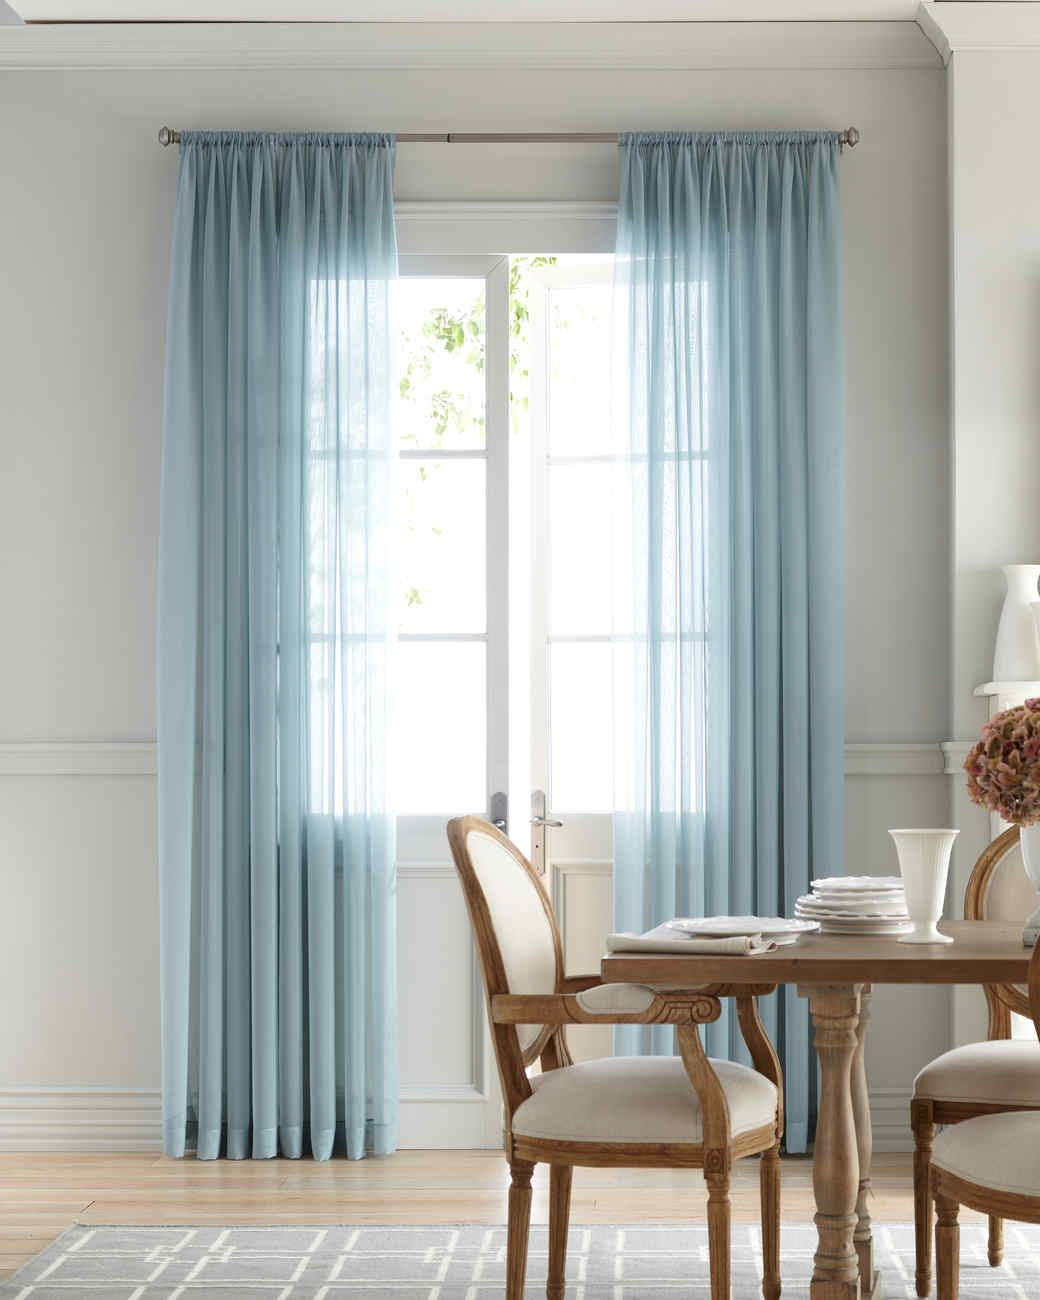 Strip The Window Dressings | Martha Stewart Living   Curtains And Drapes  Are Huge Dirt Collectors